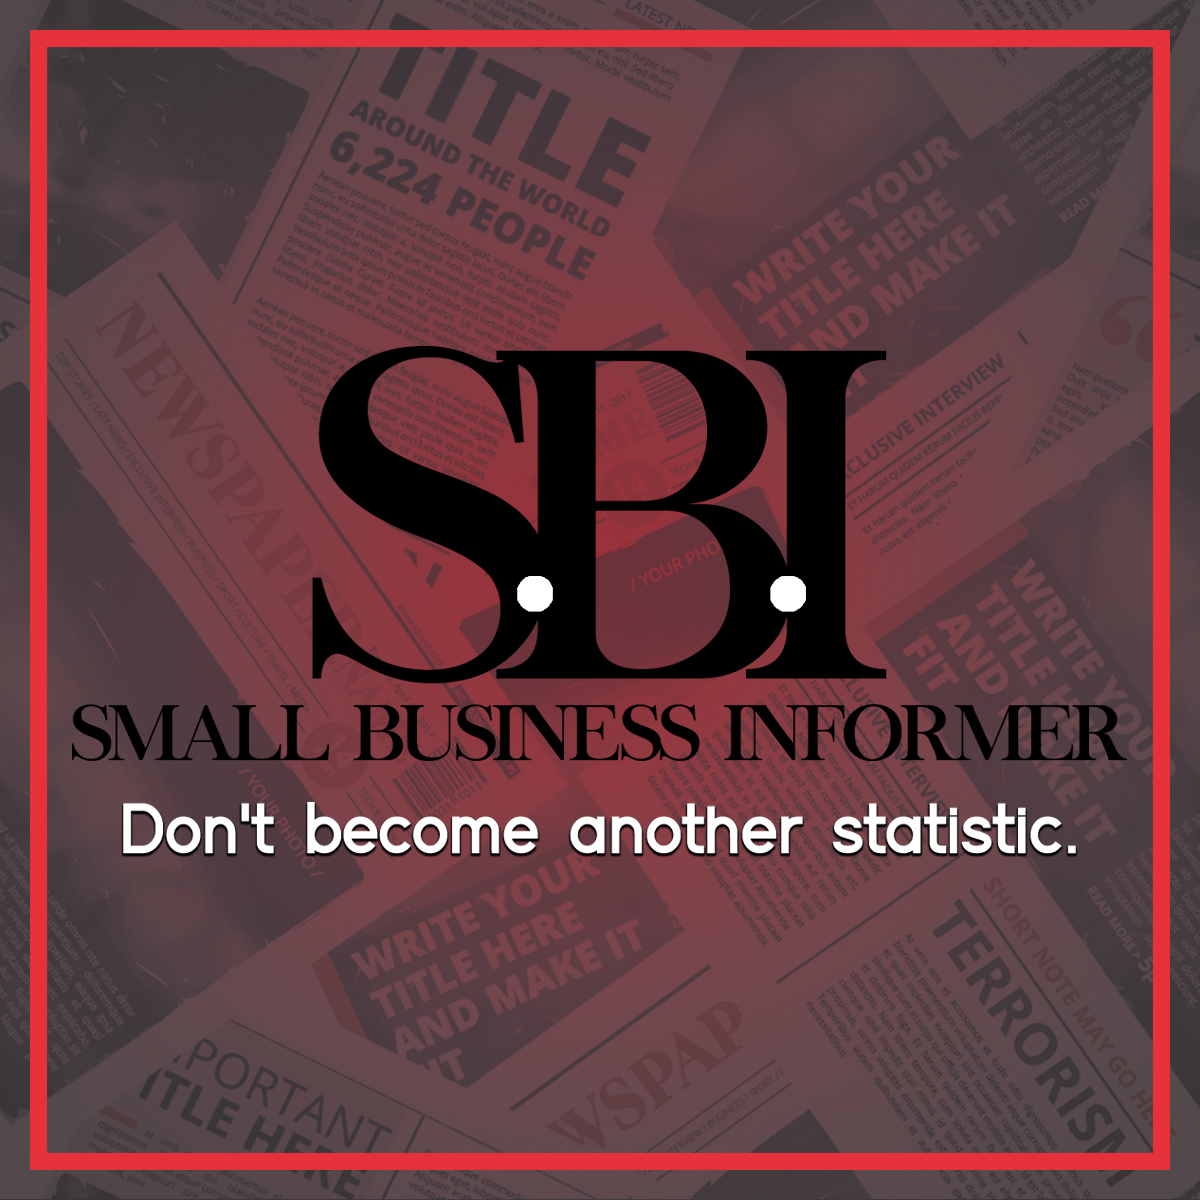 MISSION: To empower entrepreneurs worldwide on the many aspects of being a business owner. As well as motivate through honesty and the show of stats. >> http://sbi-stats.info  - #SBI #SBI_STATS #entrepreneurs #business #B2B #BYOB #beyourownbosspic.twitter.com/R8BqmJDIia